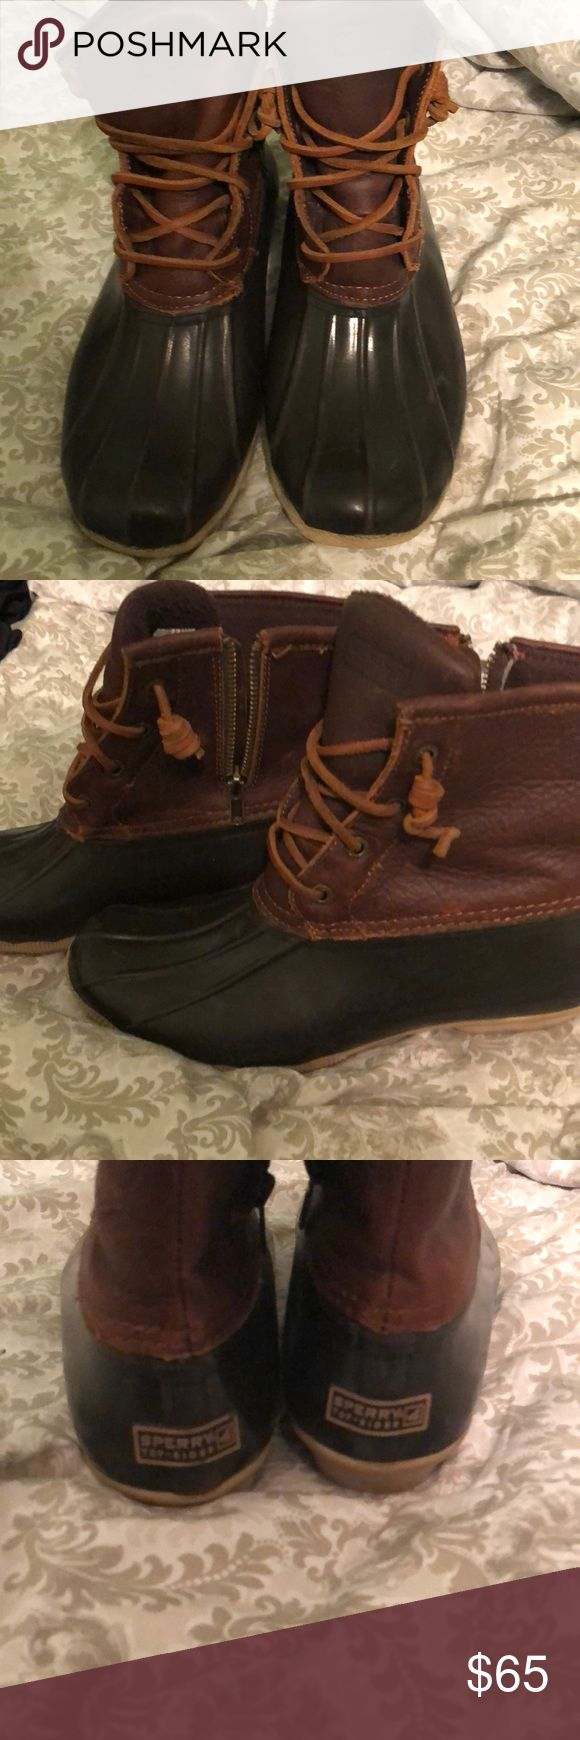 Sperry bean boots Dark brown and black rubber & leather sperry bean boots. Been worn multiple times and in good condition. The leather is just a bit wrinkled from being worn but it's not bad. Sperry Top-Sider Shoes Winter & Rain Boots